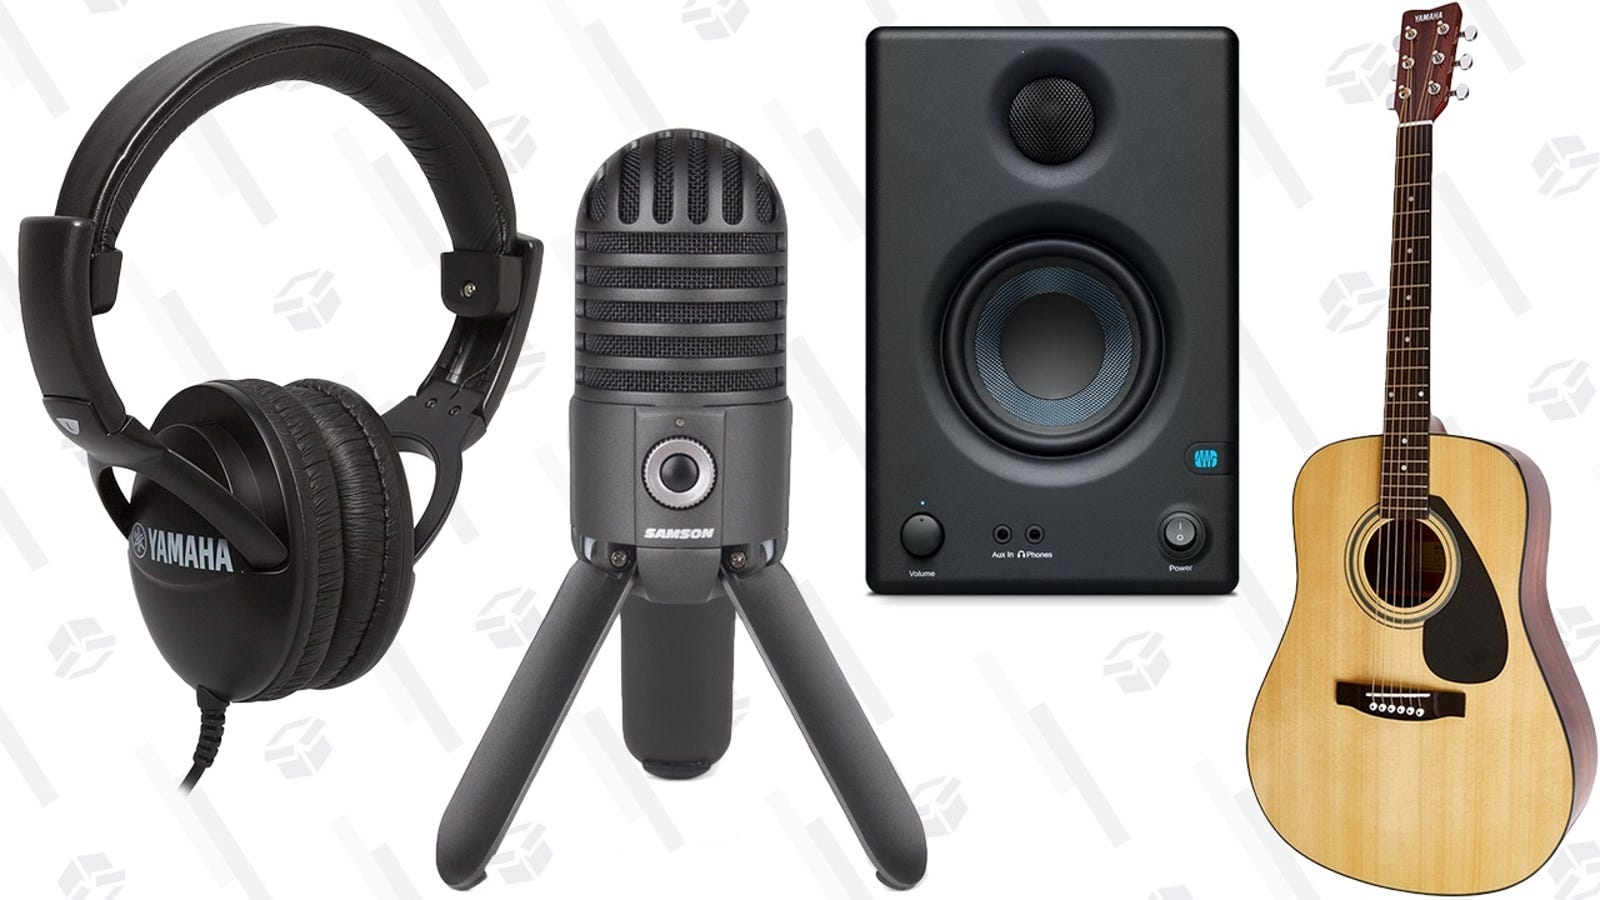 Prime Members Can Save On All Sorts of Audio Equipment, Today Only